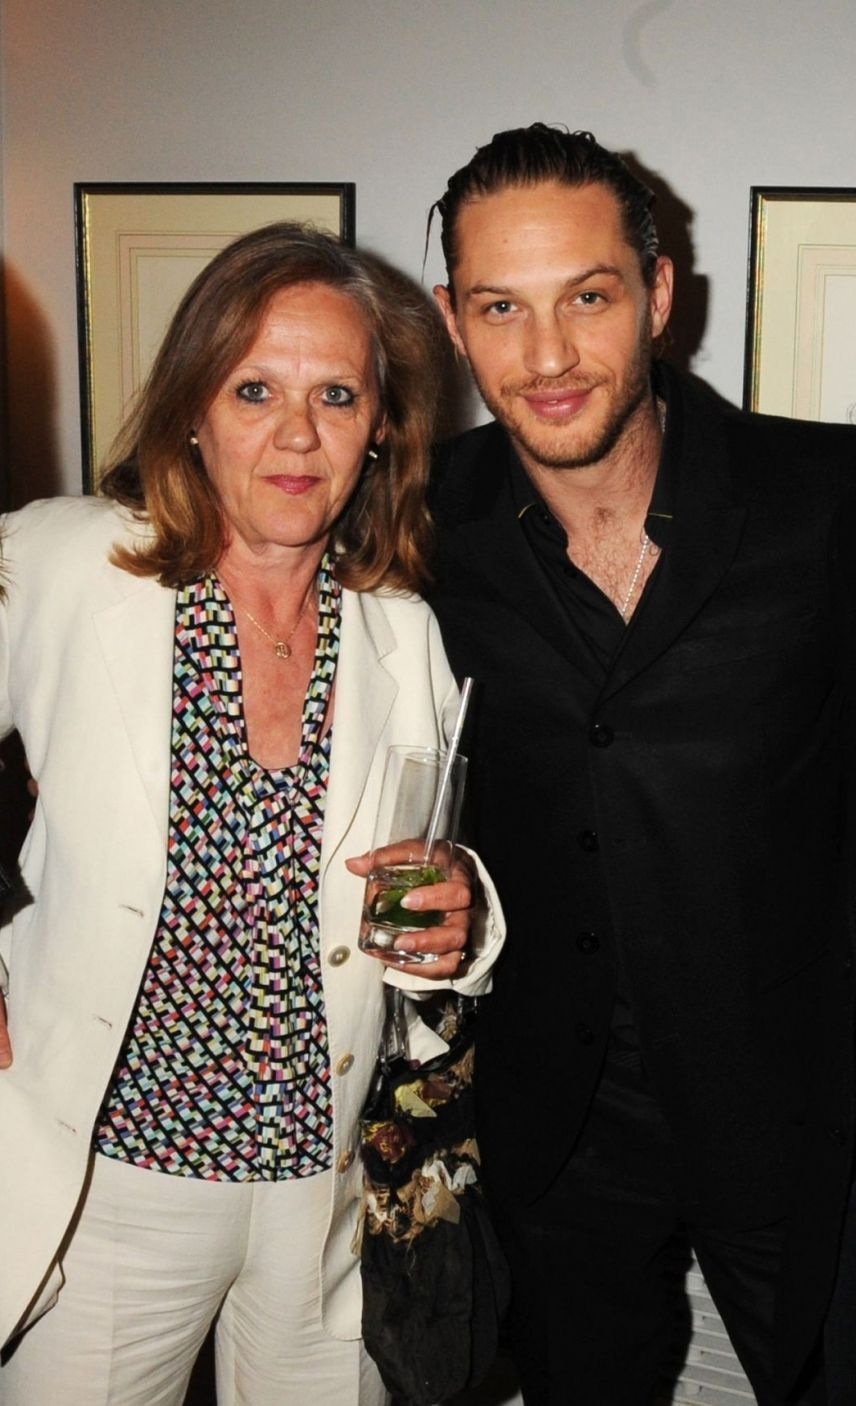 Oh look... It's Tom and his mom, my mother in law. lol